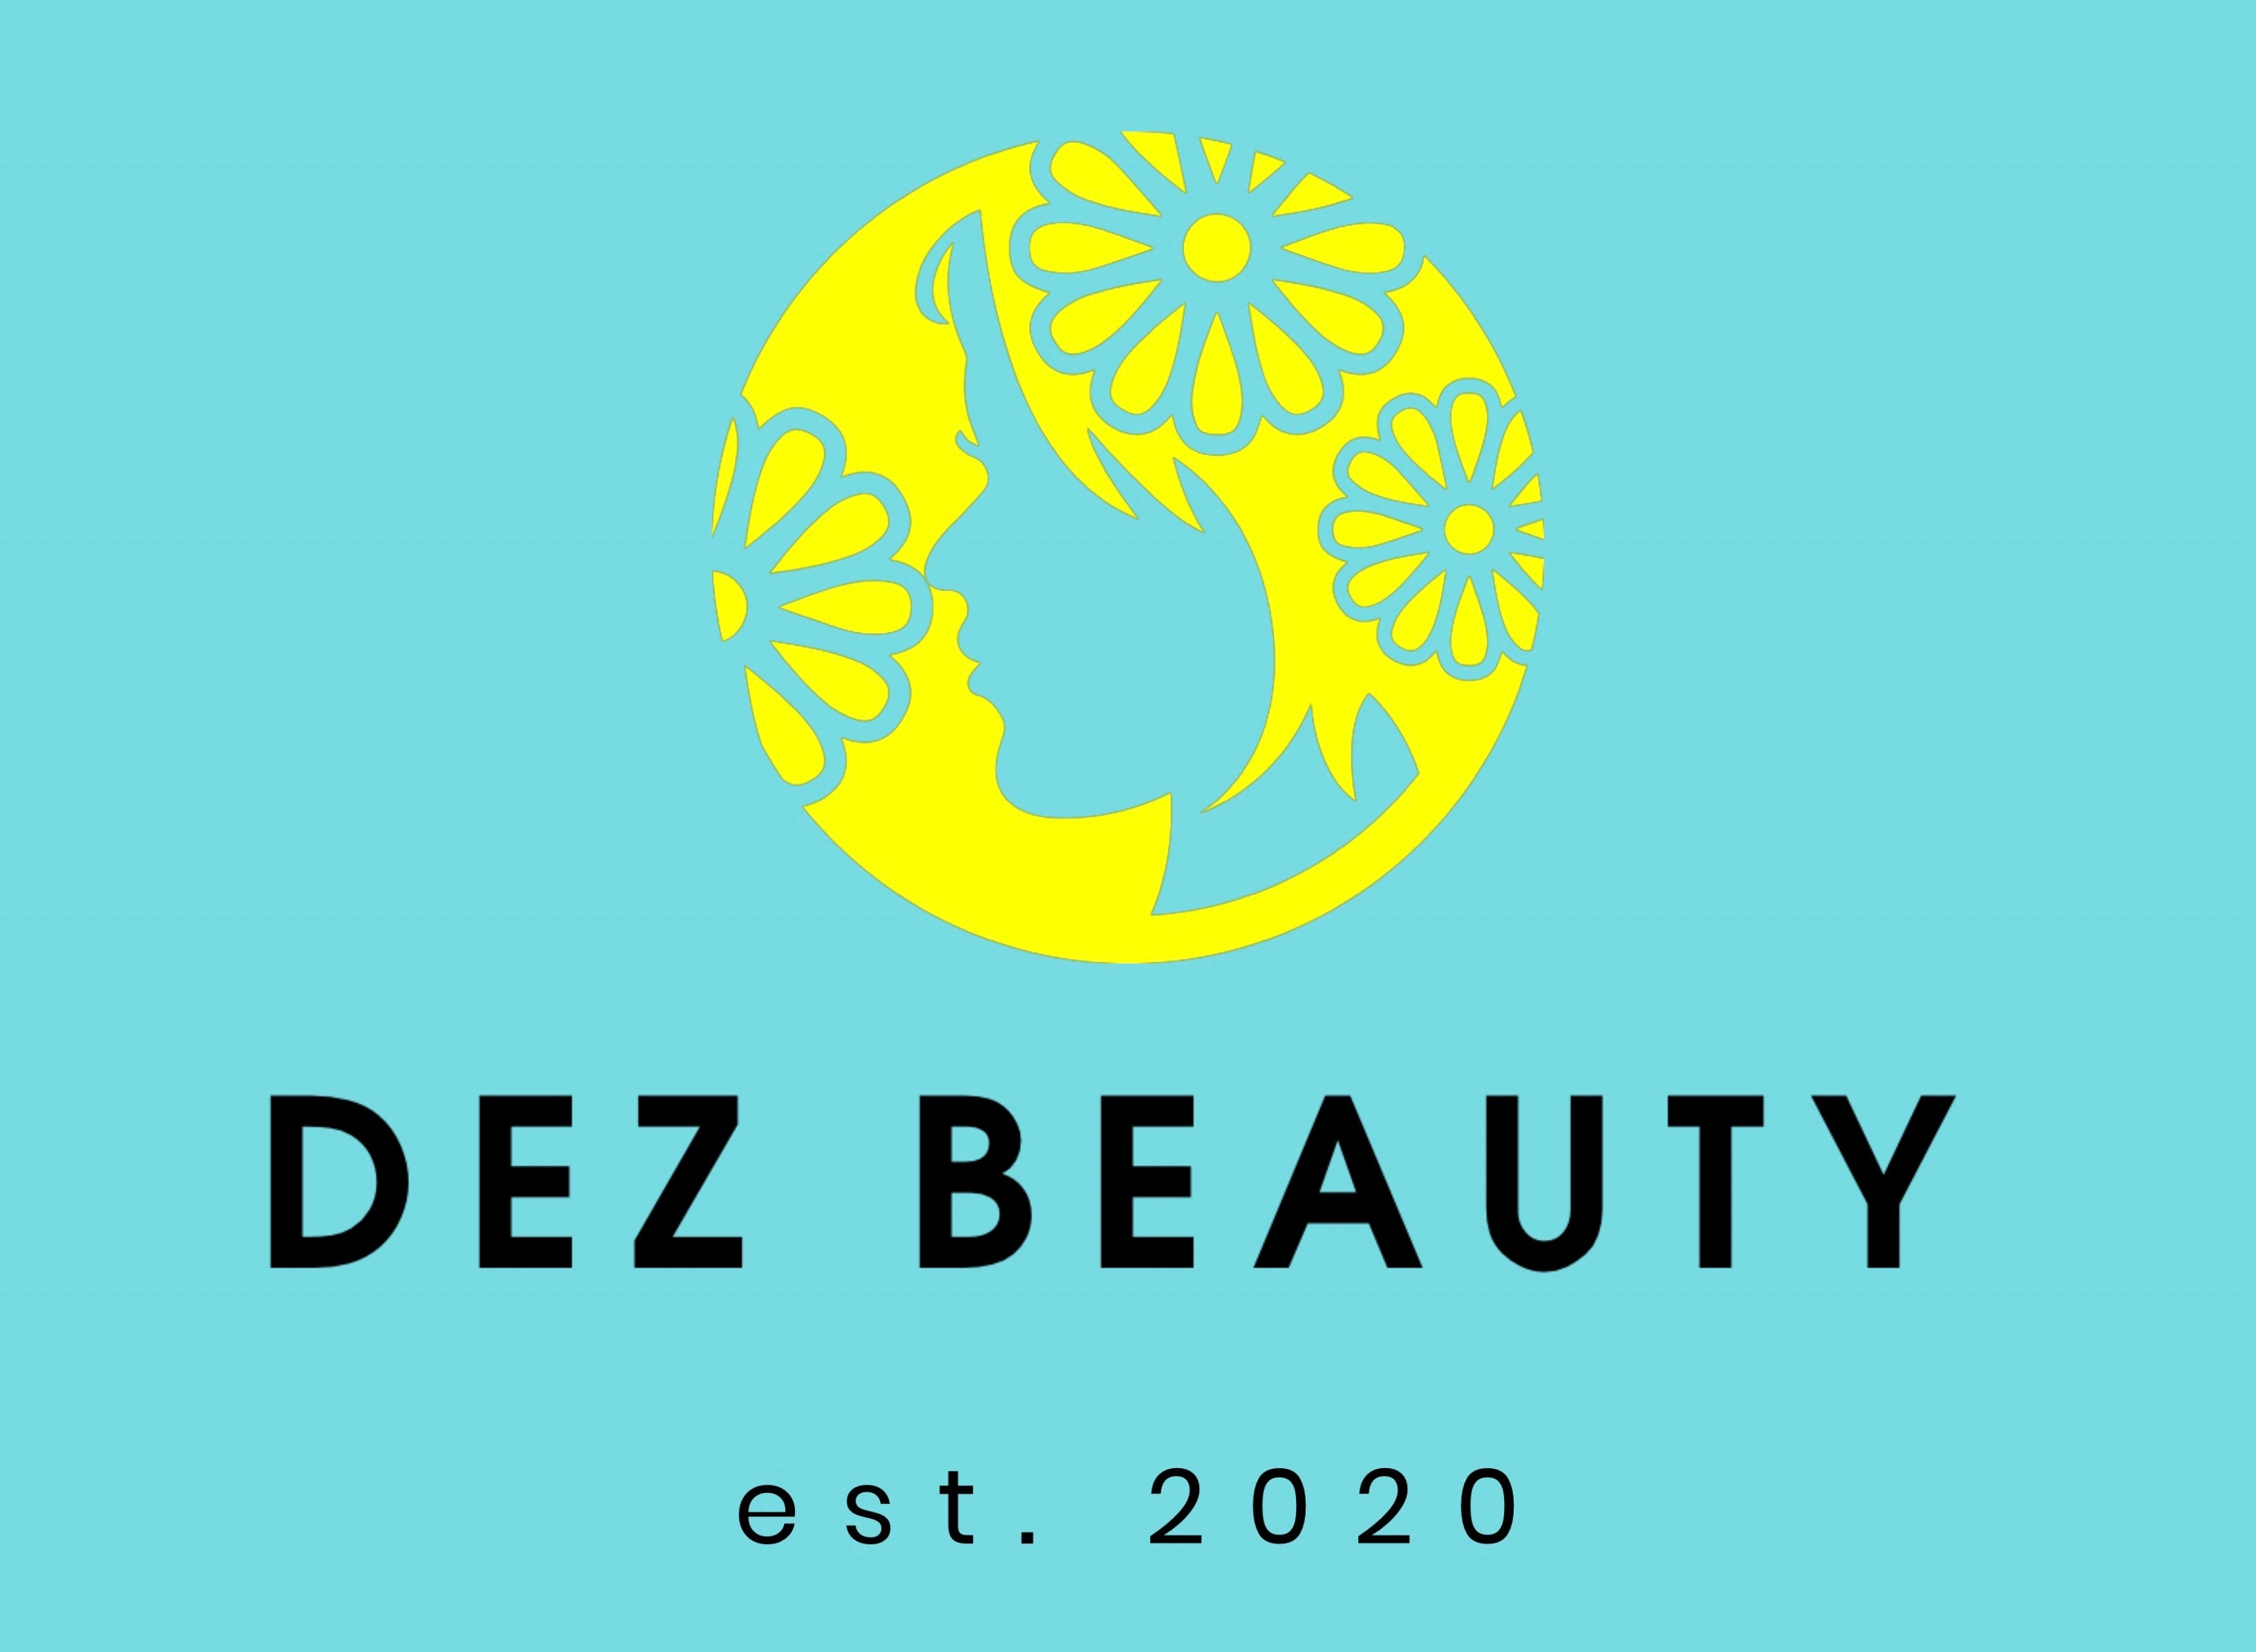 DEZ BEAUTY's account image